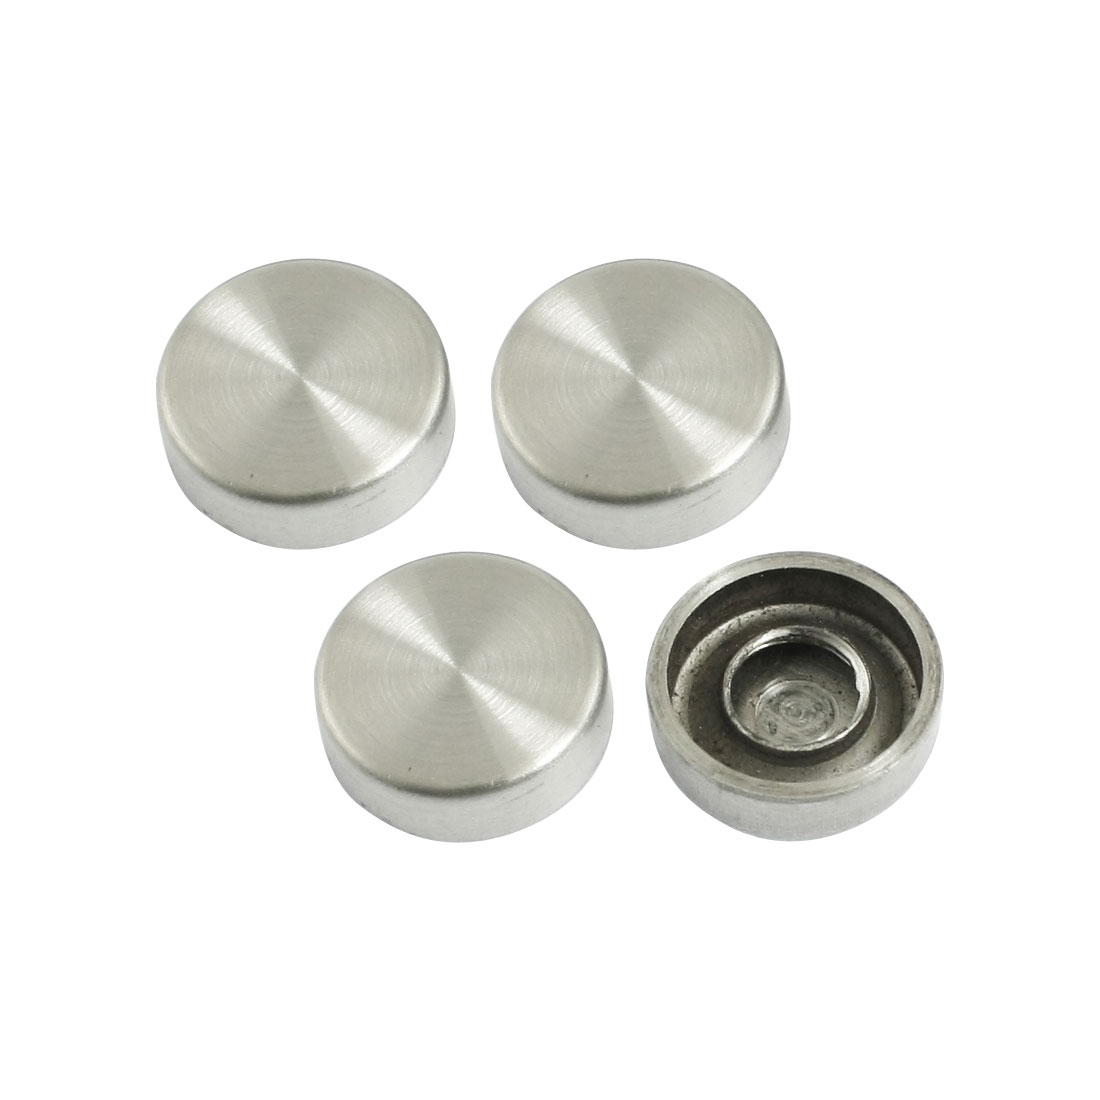 4Pcs Fitting Parts Stainless Steel 16mm Diameter Screw Cap Mirror Nails